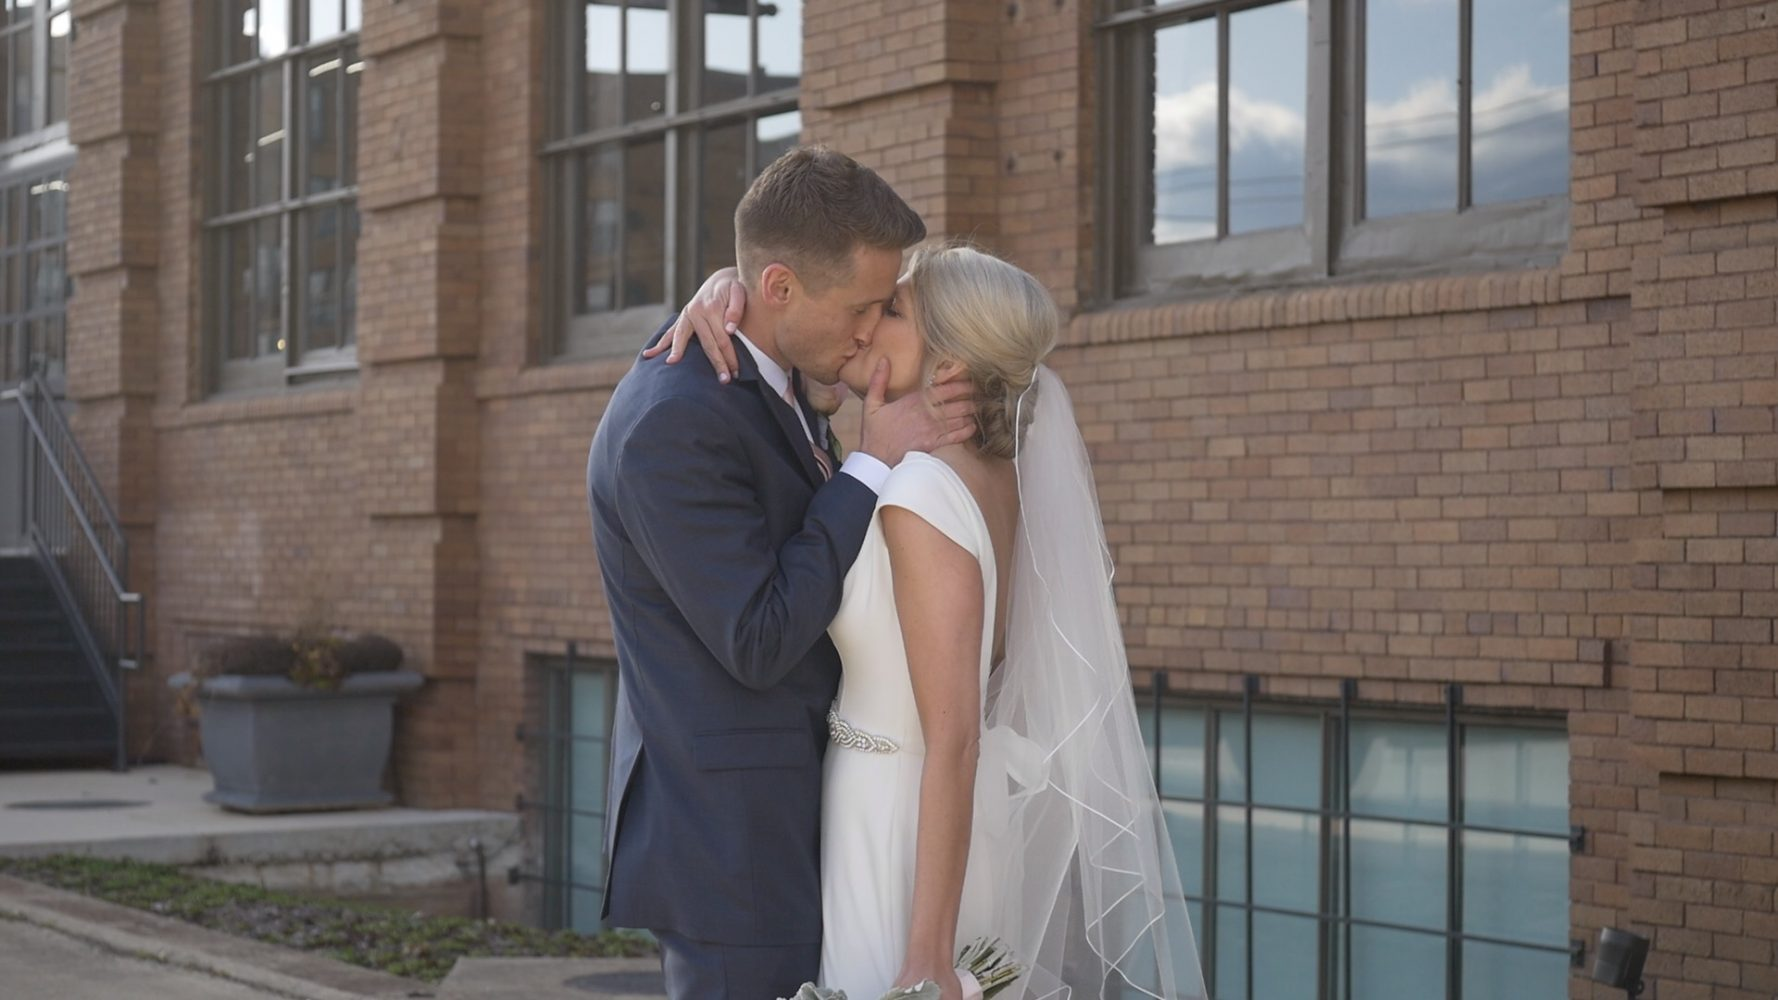 Neil + Elizabeth | Dayton, Ohio | The Steam Plant